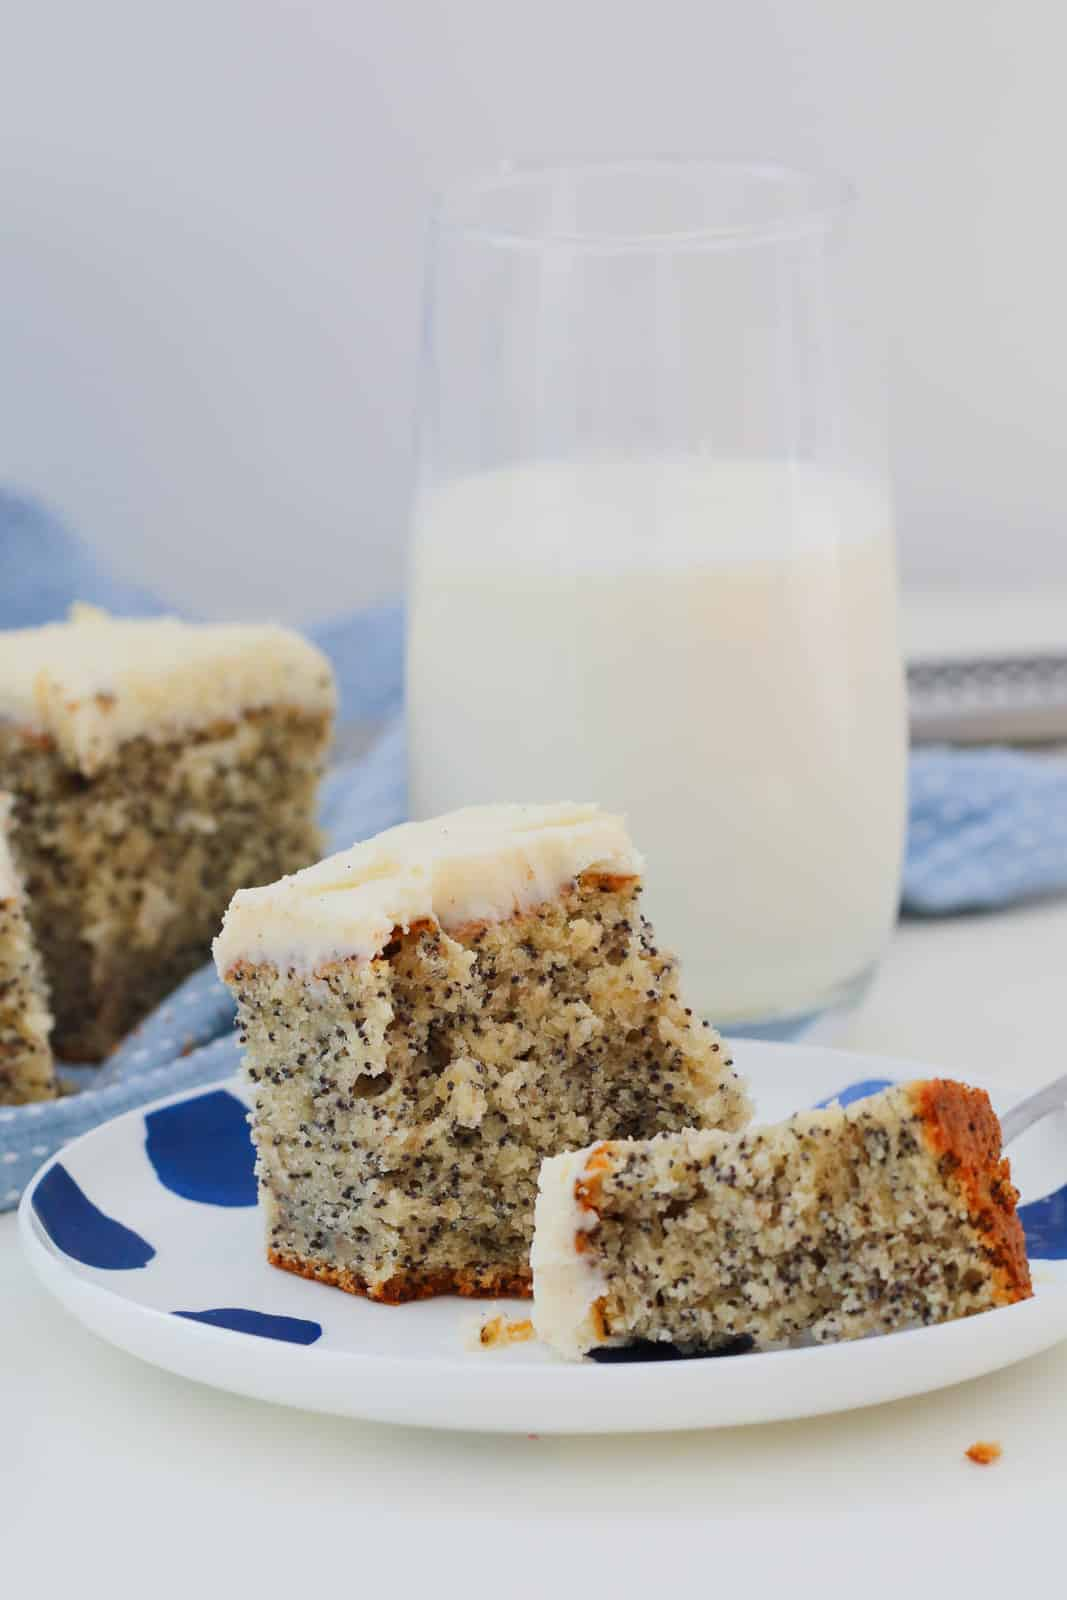 A split piece of frosted poppy seed cake on a white & blue plate, with a glass of milk and more cake on a blue and white towel in the background.